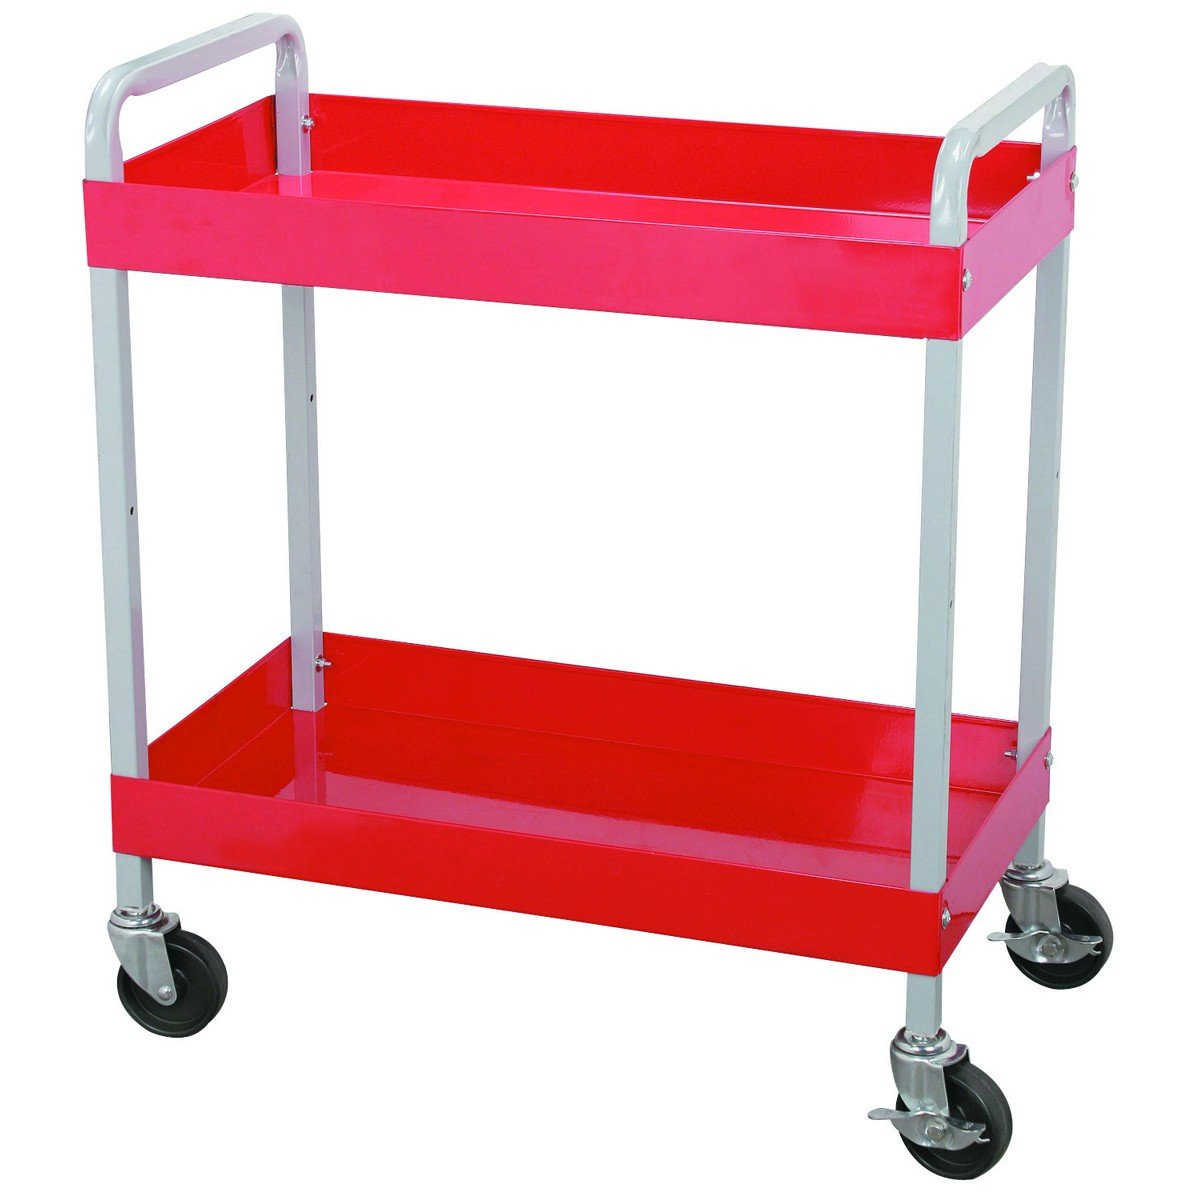 Maxworks 40104 Two-Tray Service Cart, 30-Inch Long by 16-Inch Wide, 250-Pound Capacity